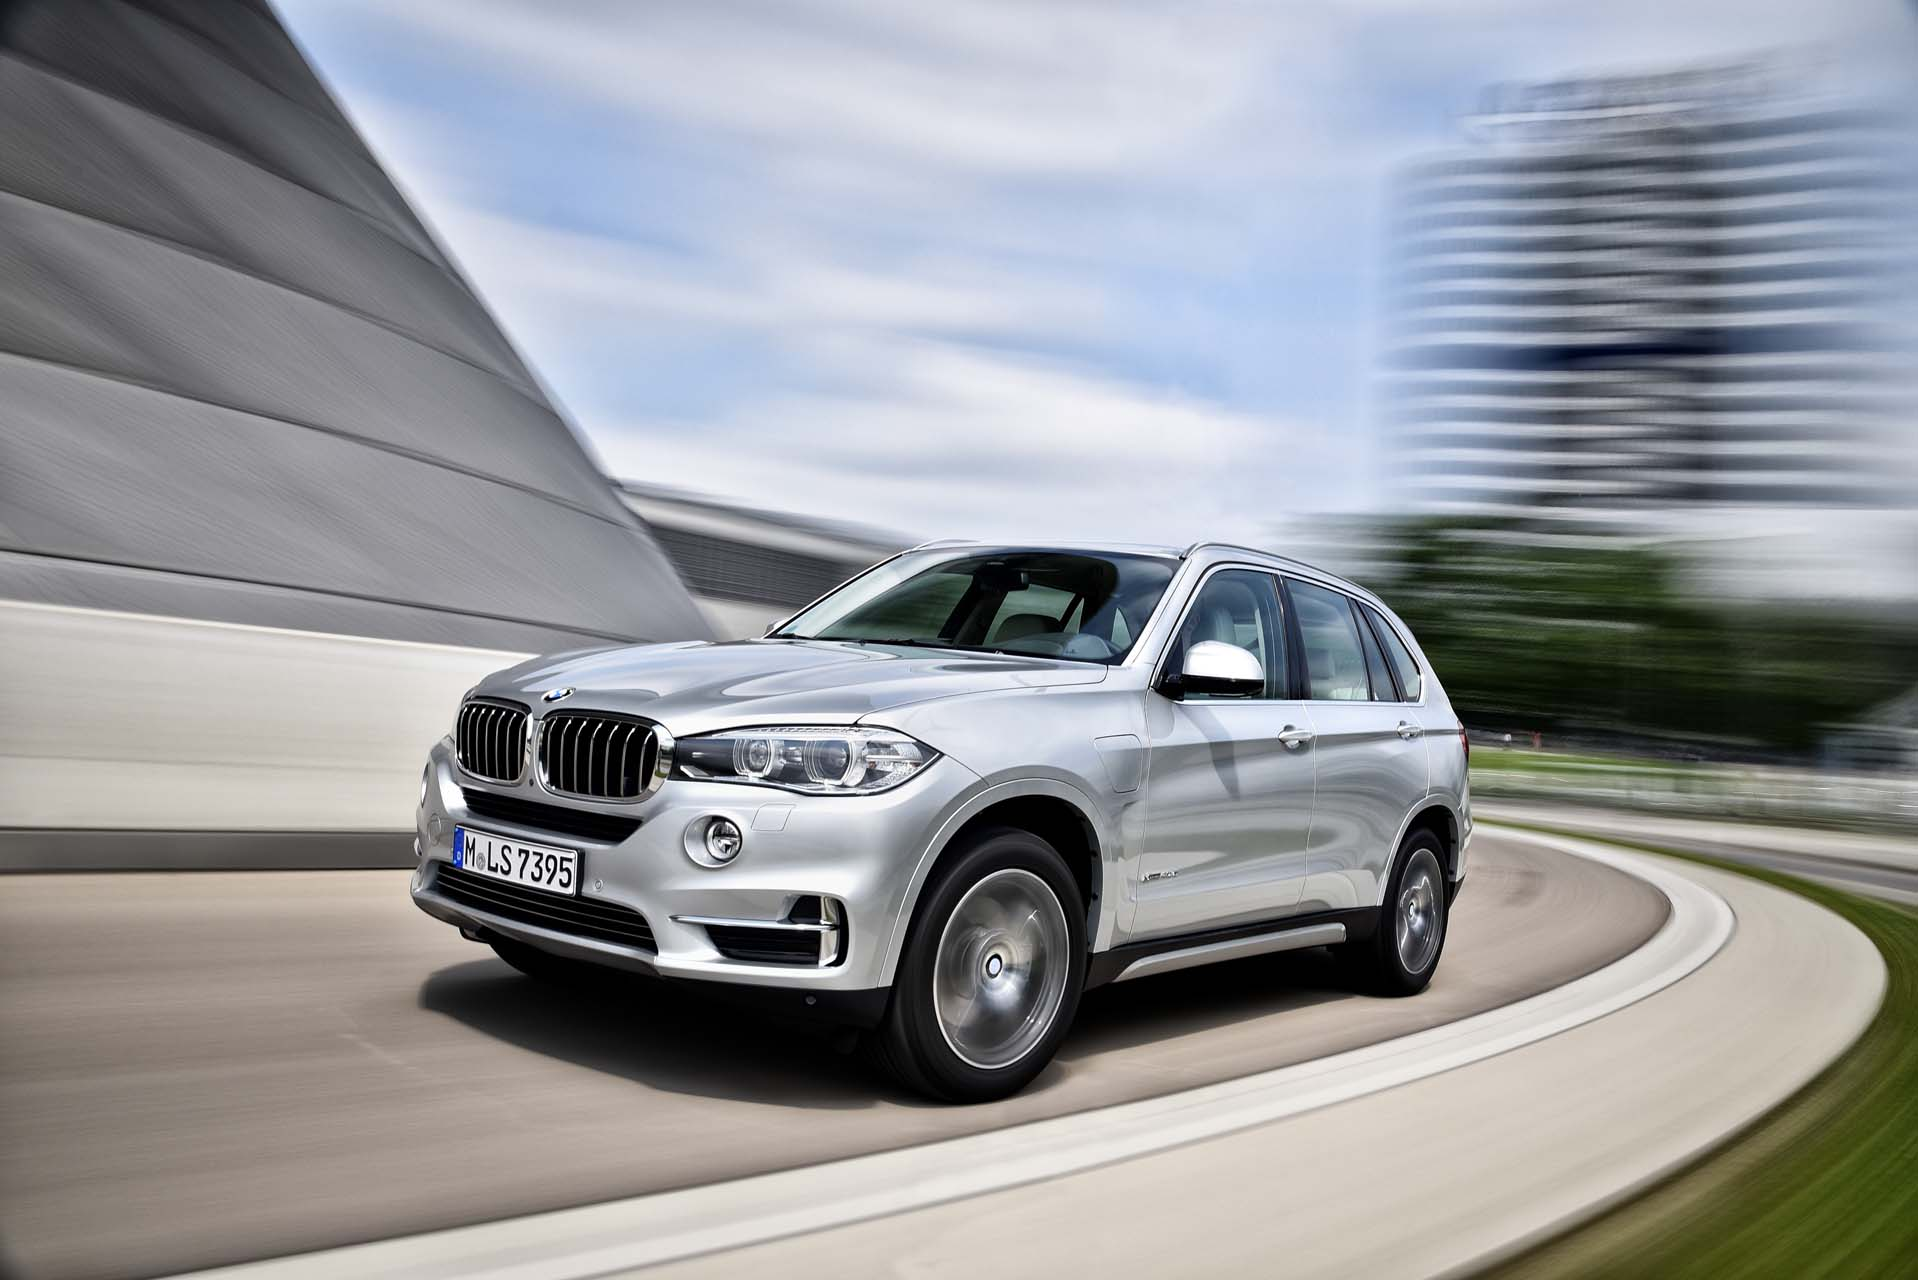 2017 bmw x5 quality review the car connection. Black Bedroom Furniture Sets. Home Design Ideas